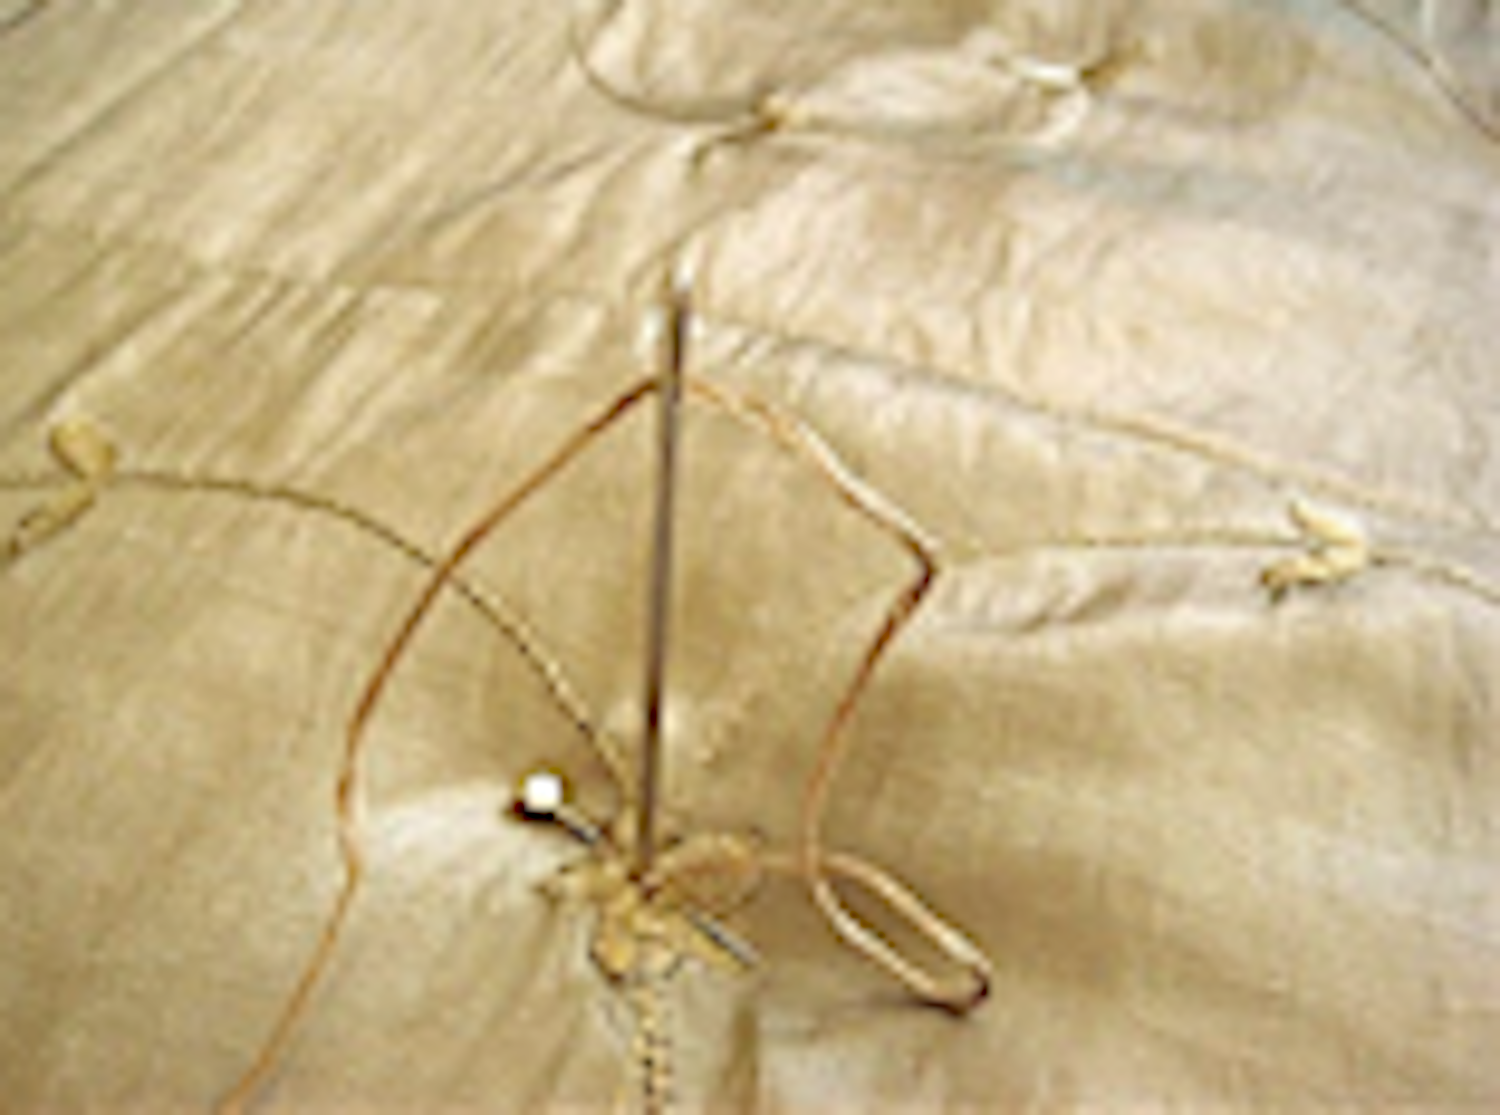 step 11 - Put the comforter on the bed. Thread a sharp needle with a large eye using the floss. Start making tufts by pushing the needle through the underside of the comforter, bringing it up through all layers. About 1/8 inch away from your exit point, push the needle back down to the underside.